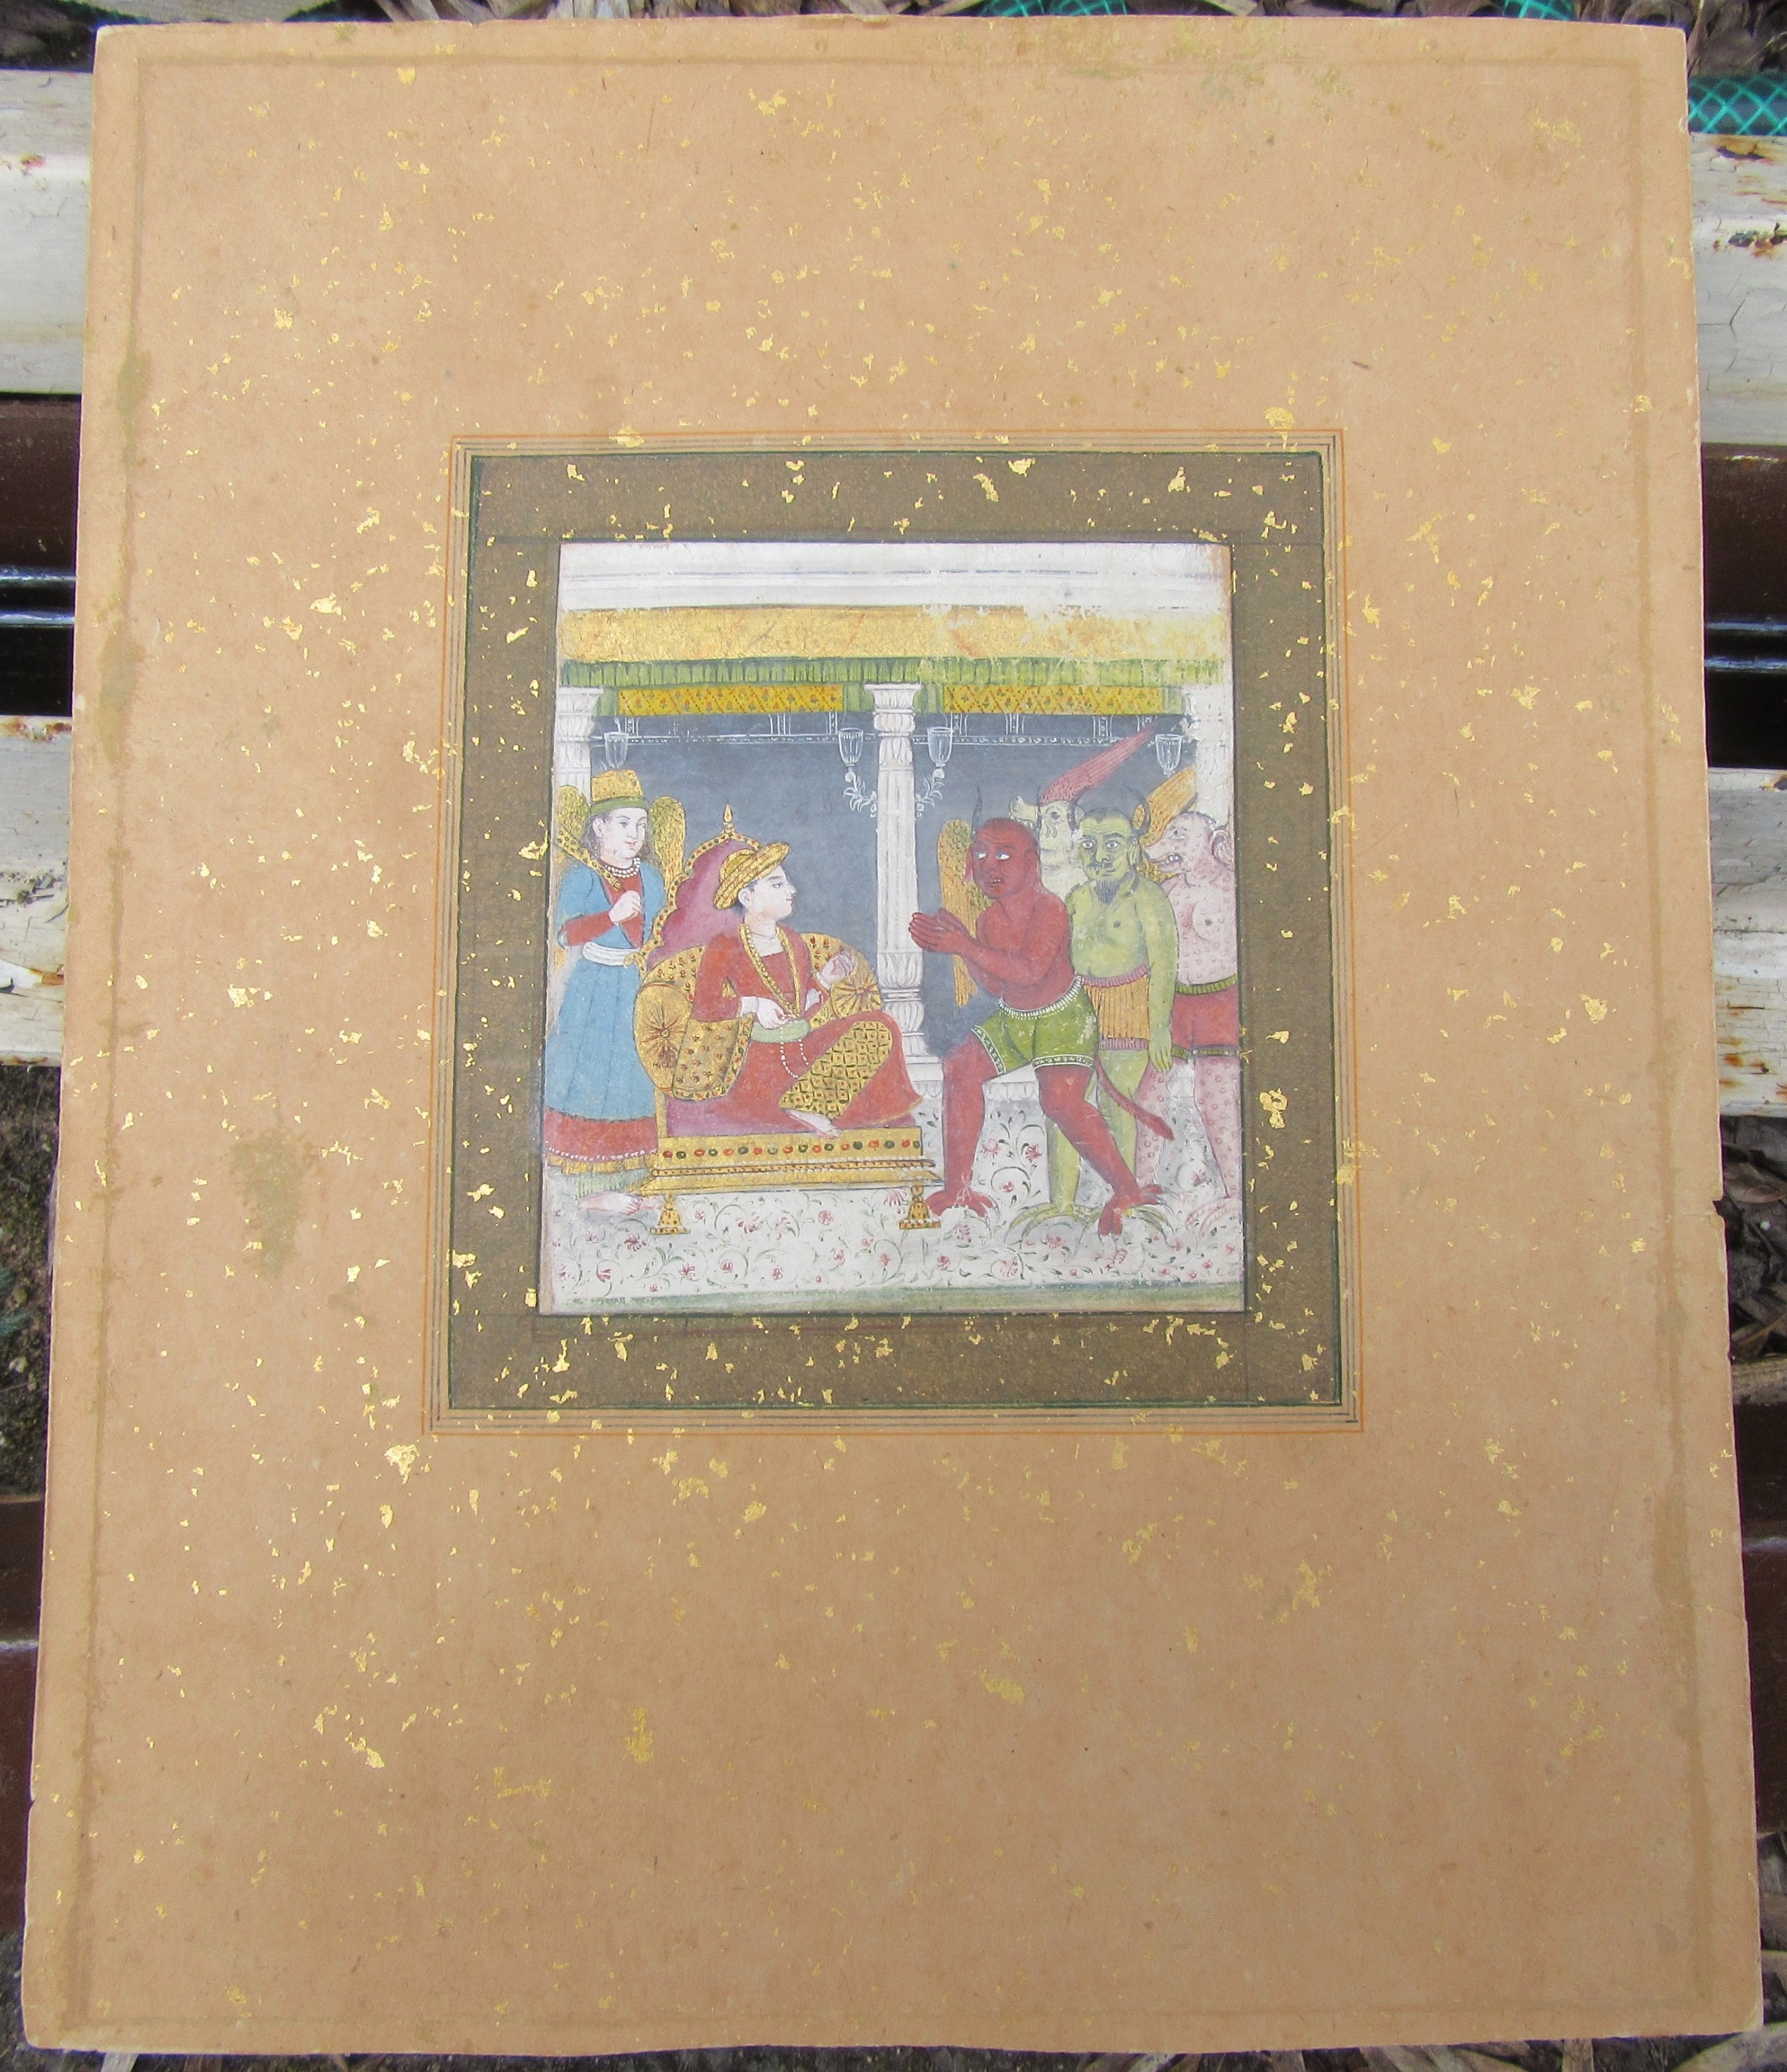 king solomon in the company of angels and demonsdelhi schoolcirca 1800 indian miniature painting